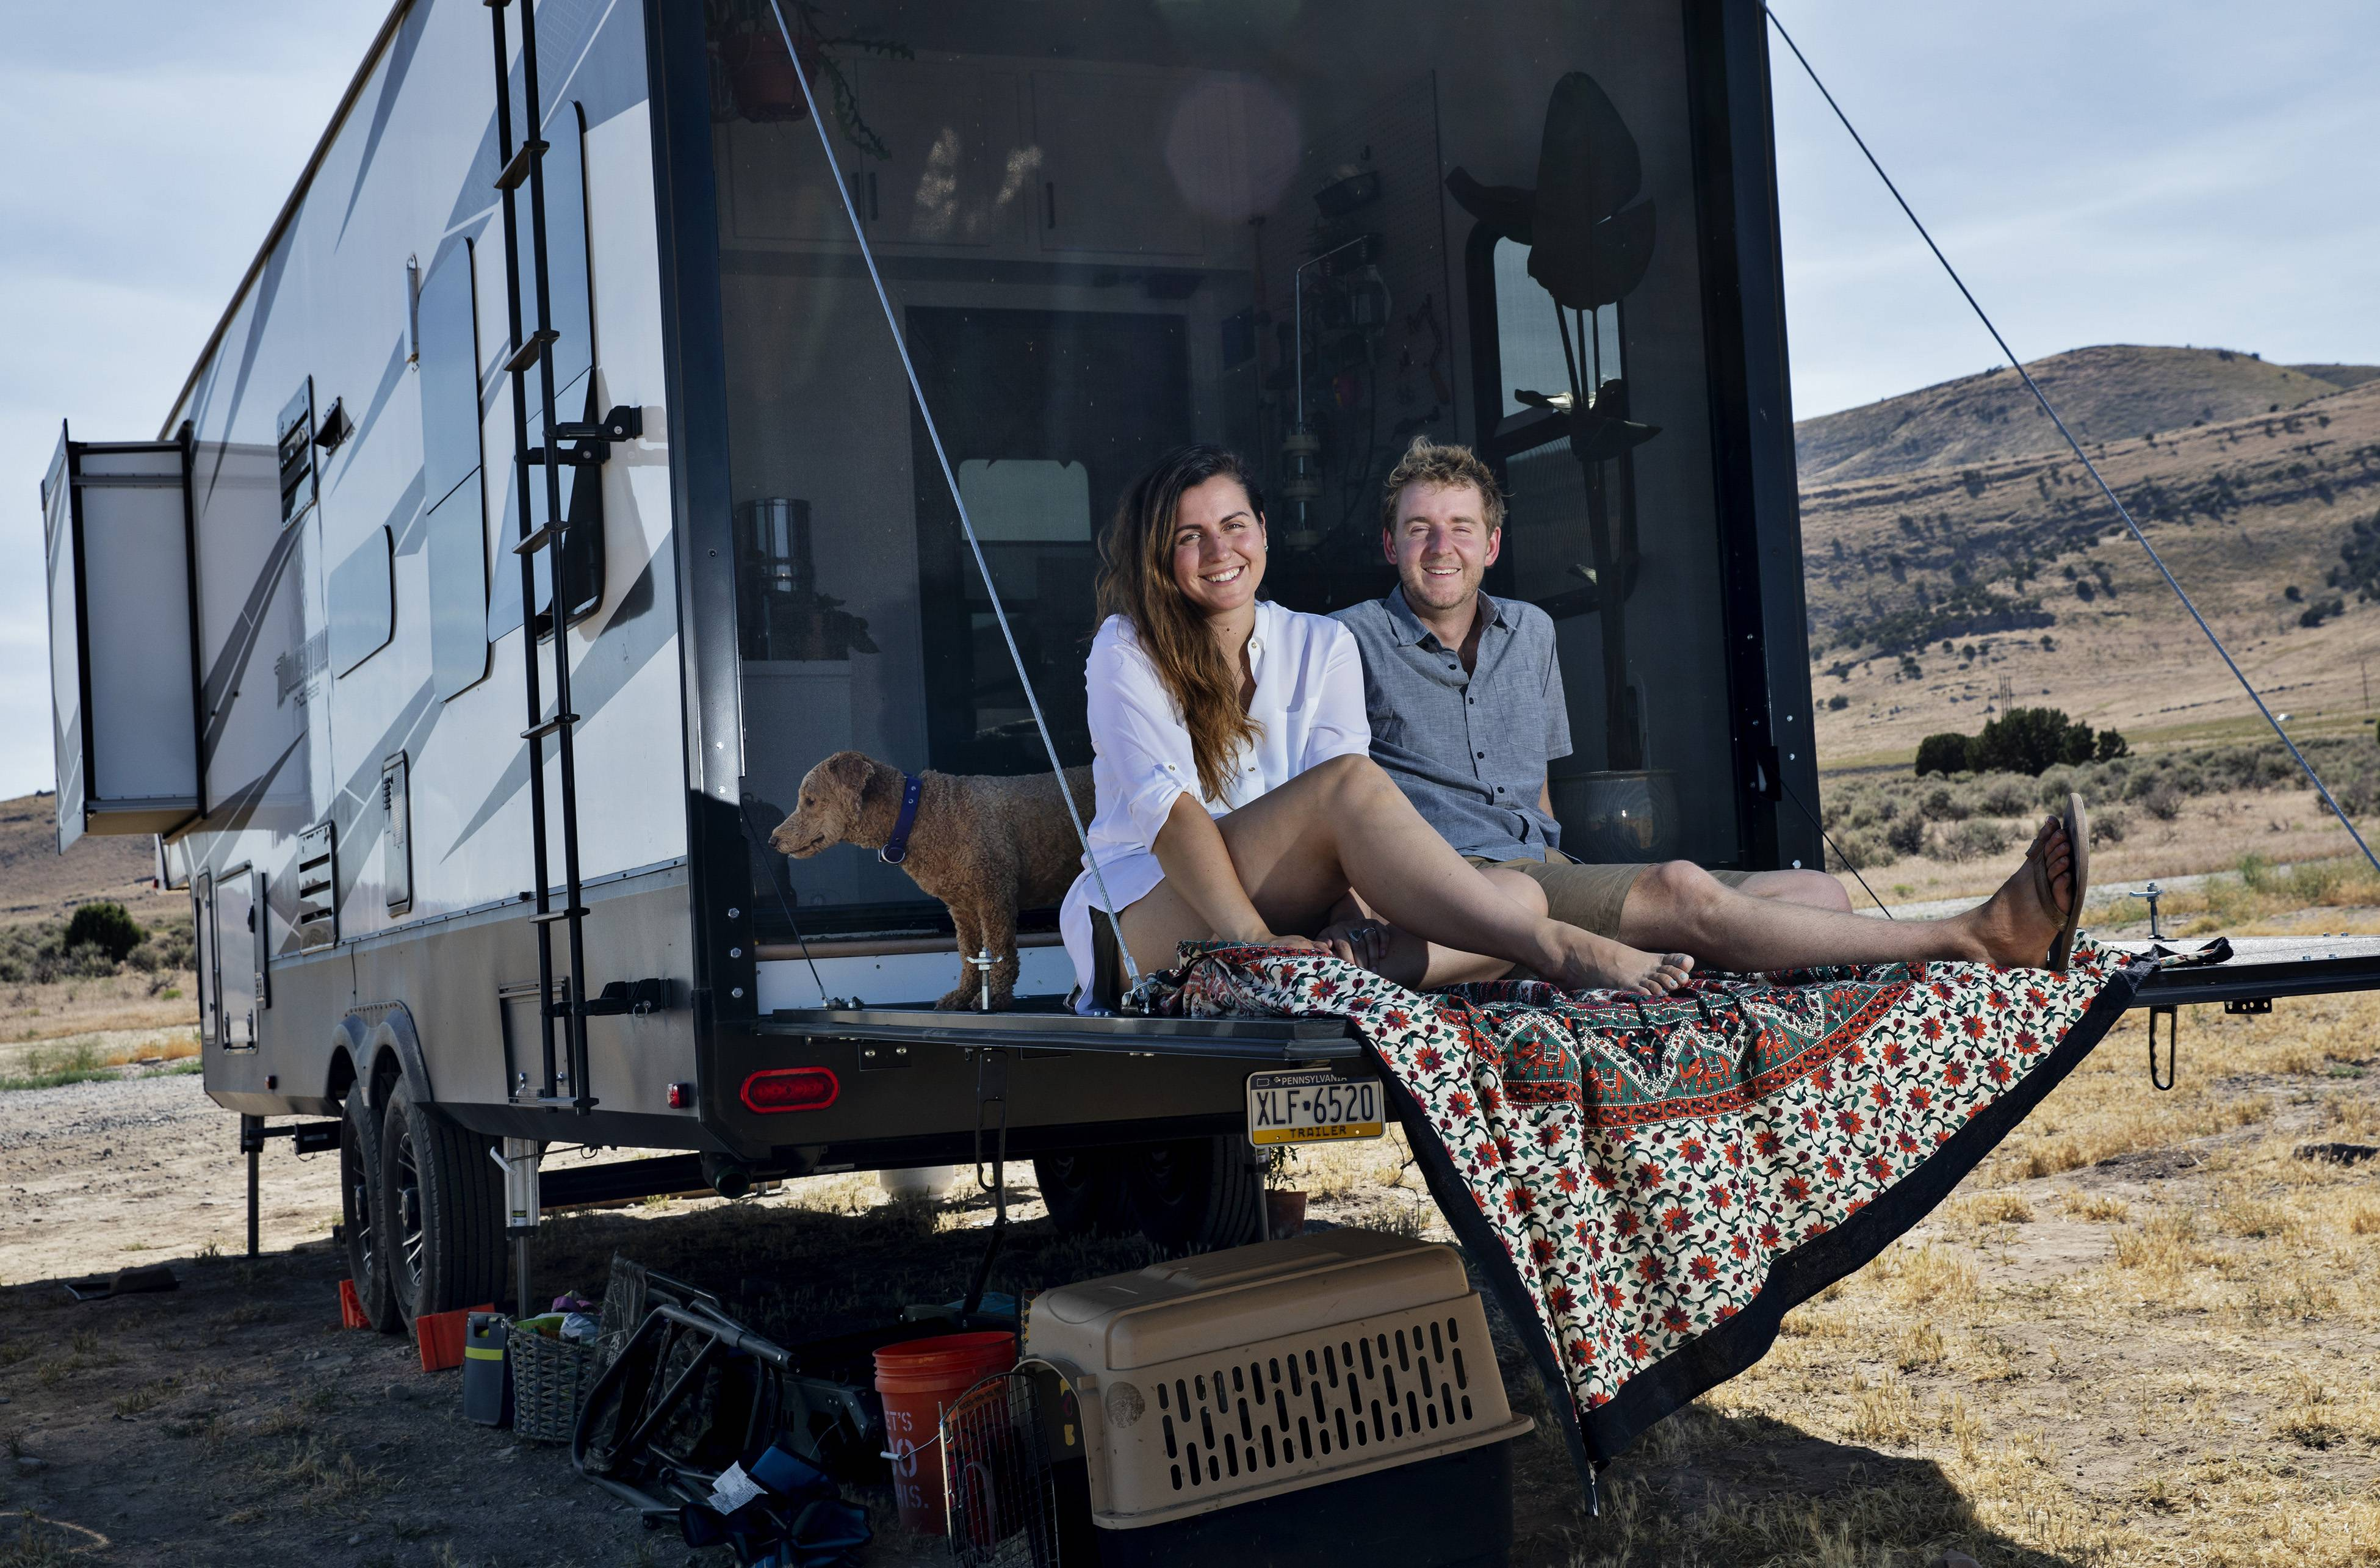 Mandy and Kevin Holesh relax with one of their two dogs at their RV. They were parked last week at Utah Lake in Saratoga Springs, Utah, far from their previous home in Pittsburgh.